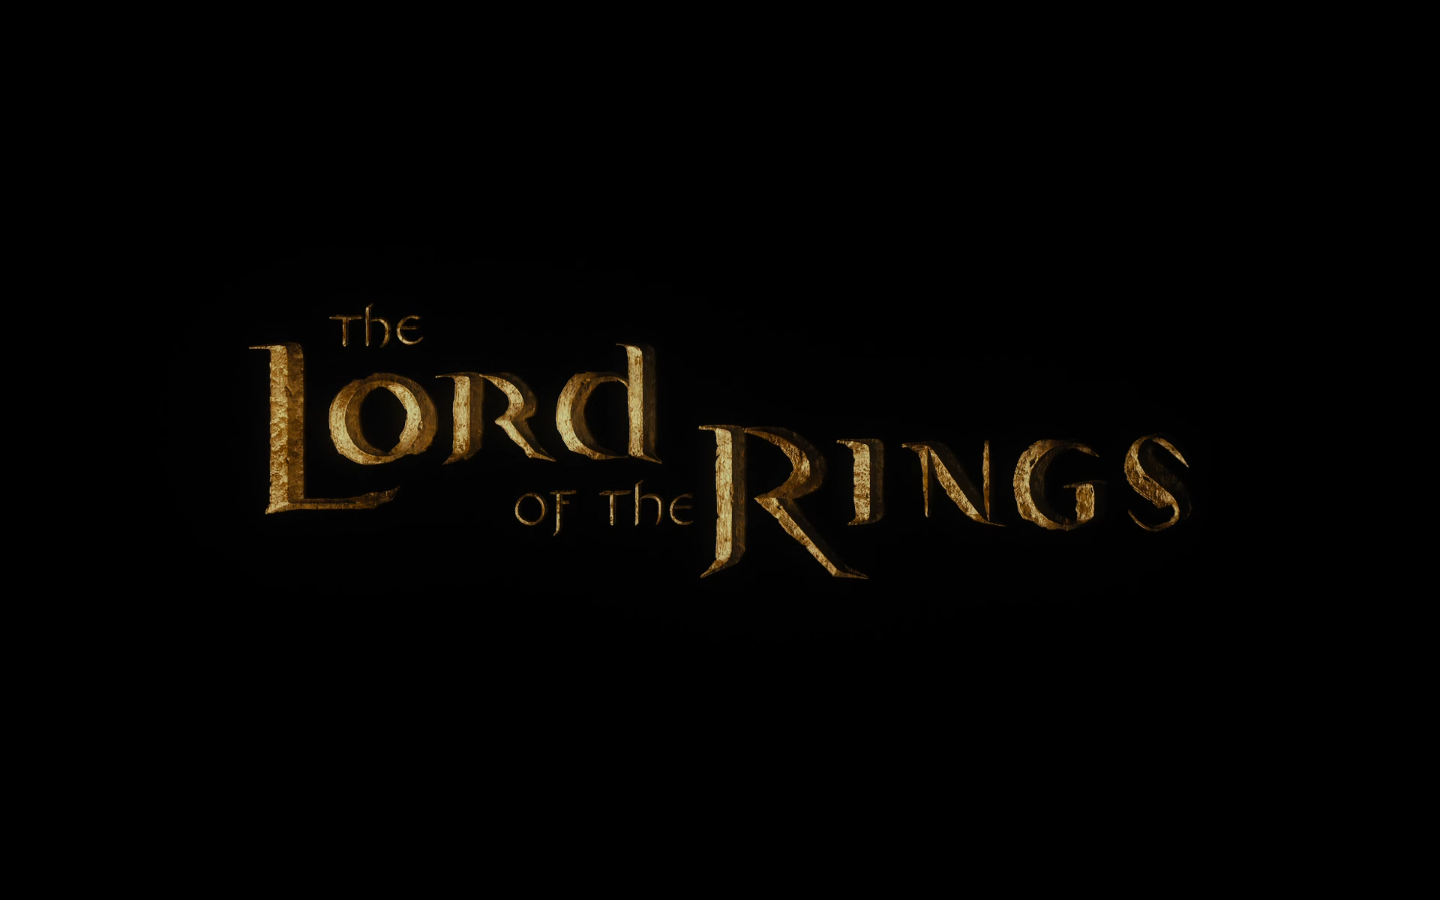 First Lord Of The Rings Movie Title